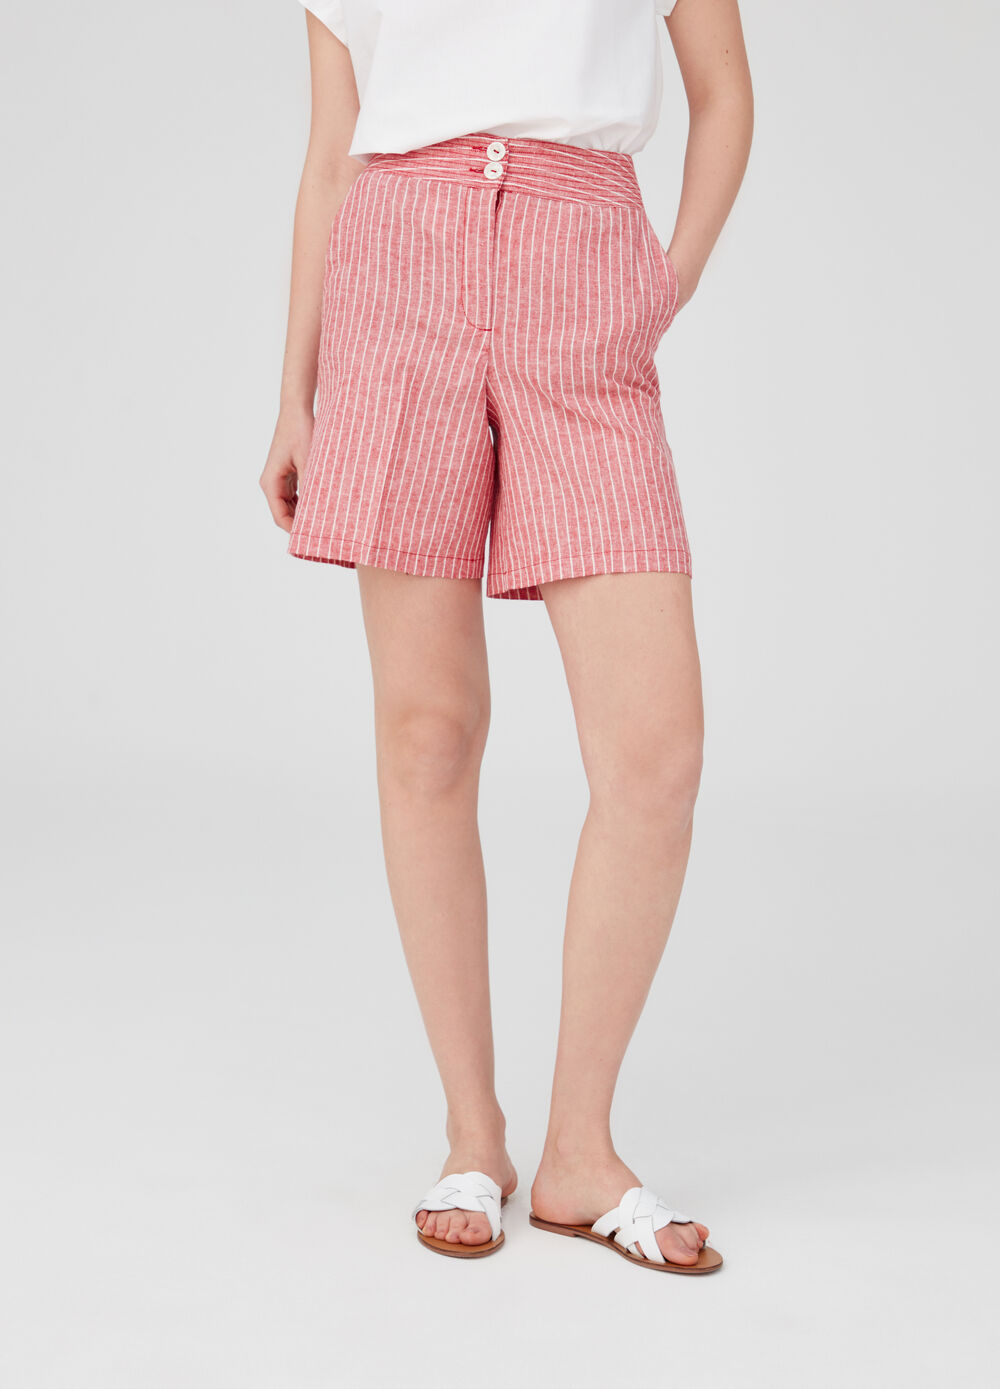 High-waisted shorts with pockets with striped buttons